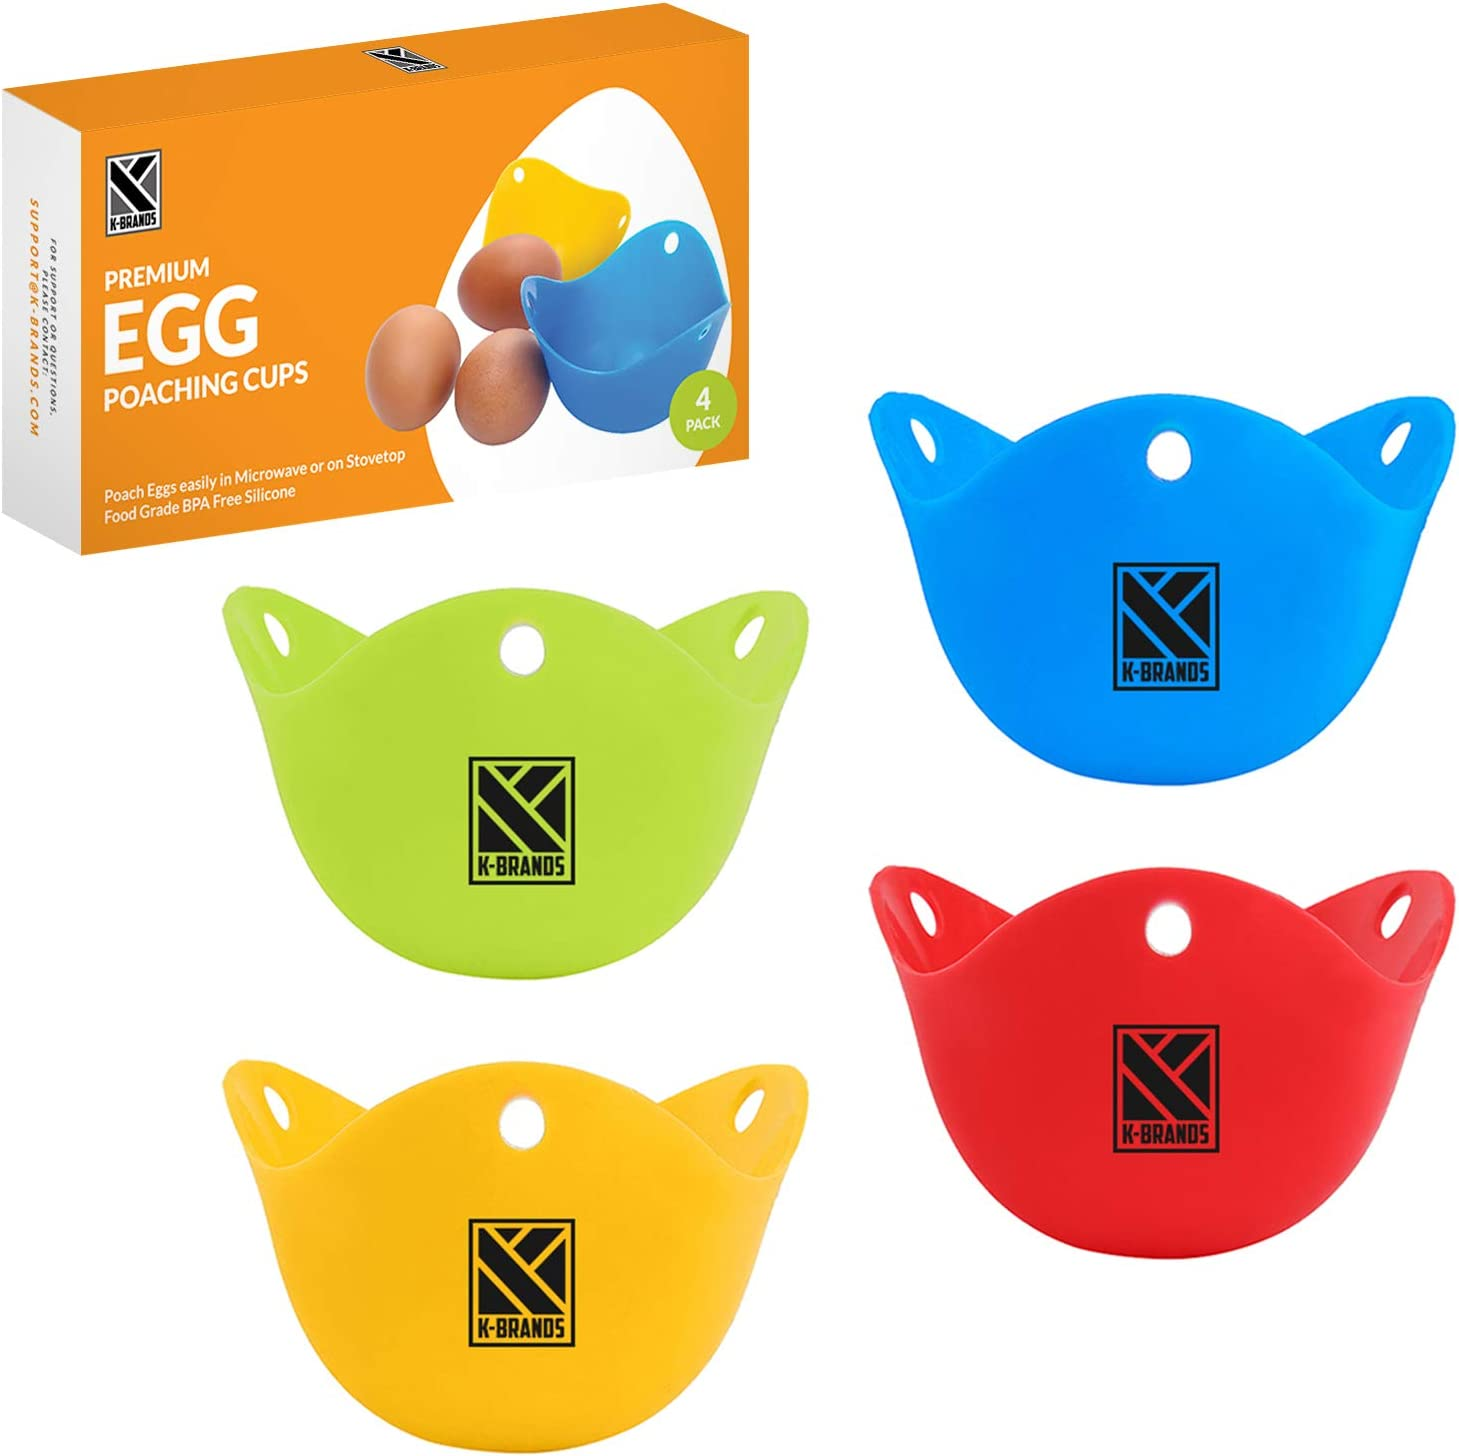 K-Brands Egg Poacher, Silicone Egg Poaching Cups for Microwave and Stovetop cooking - Food Grade BPA Free Silicone (4 Pack)